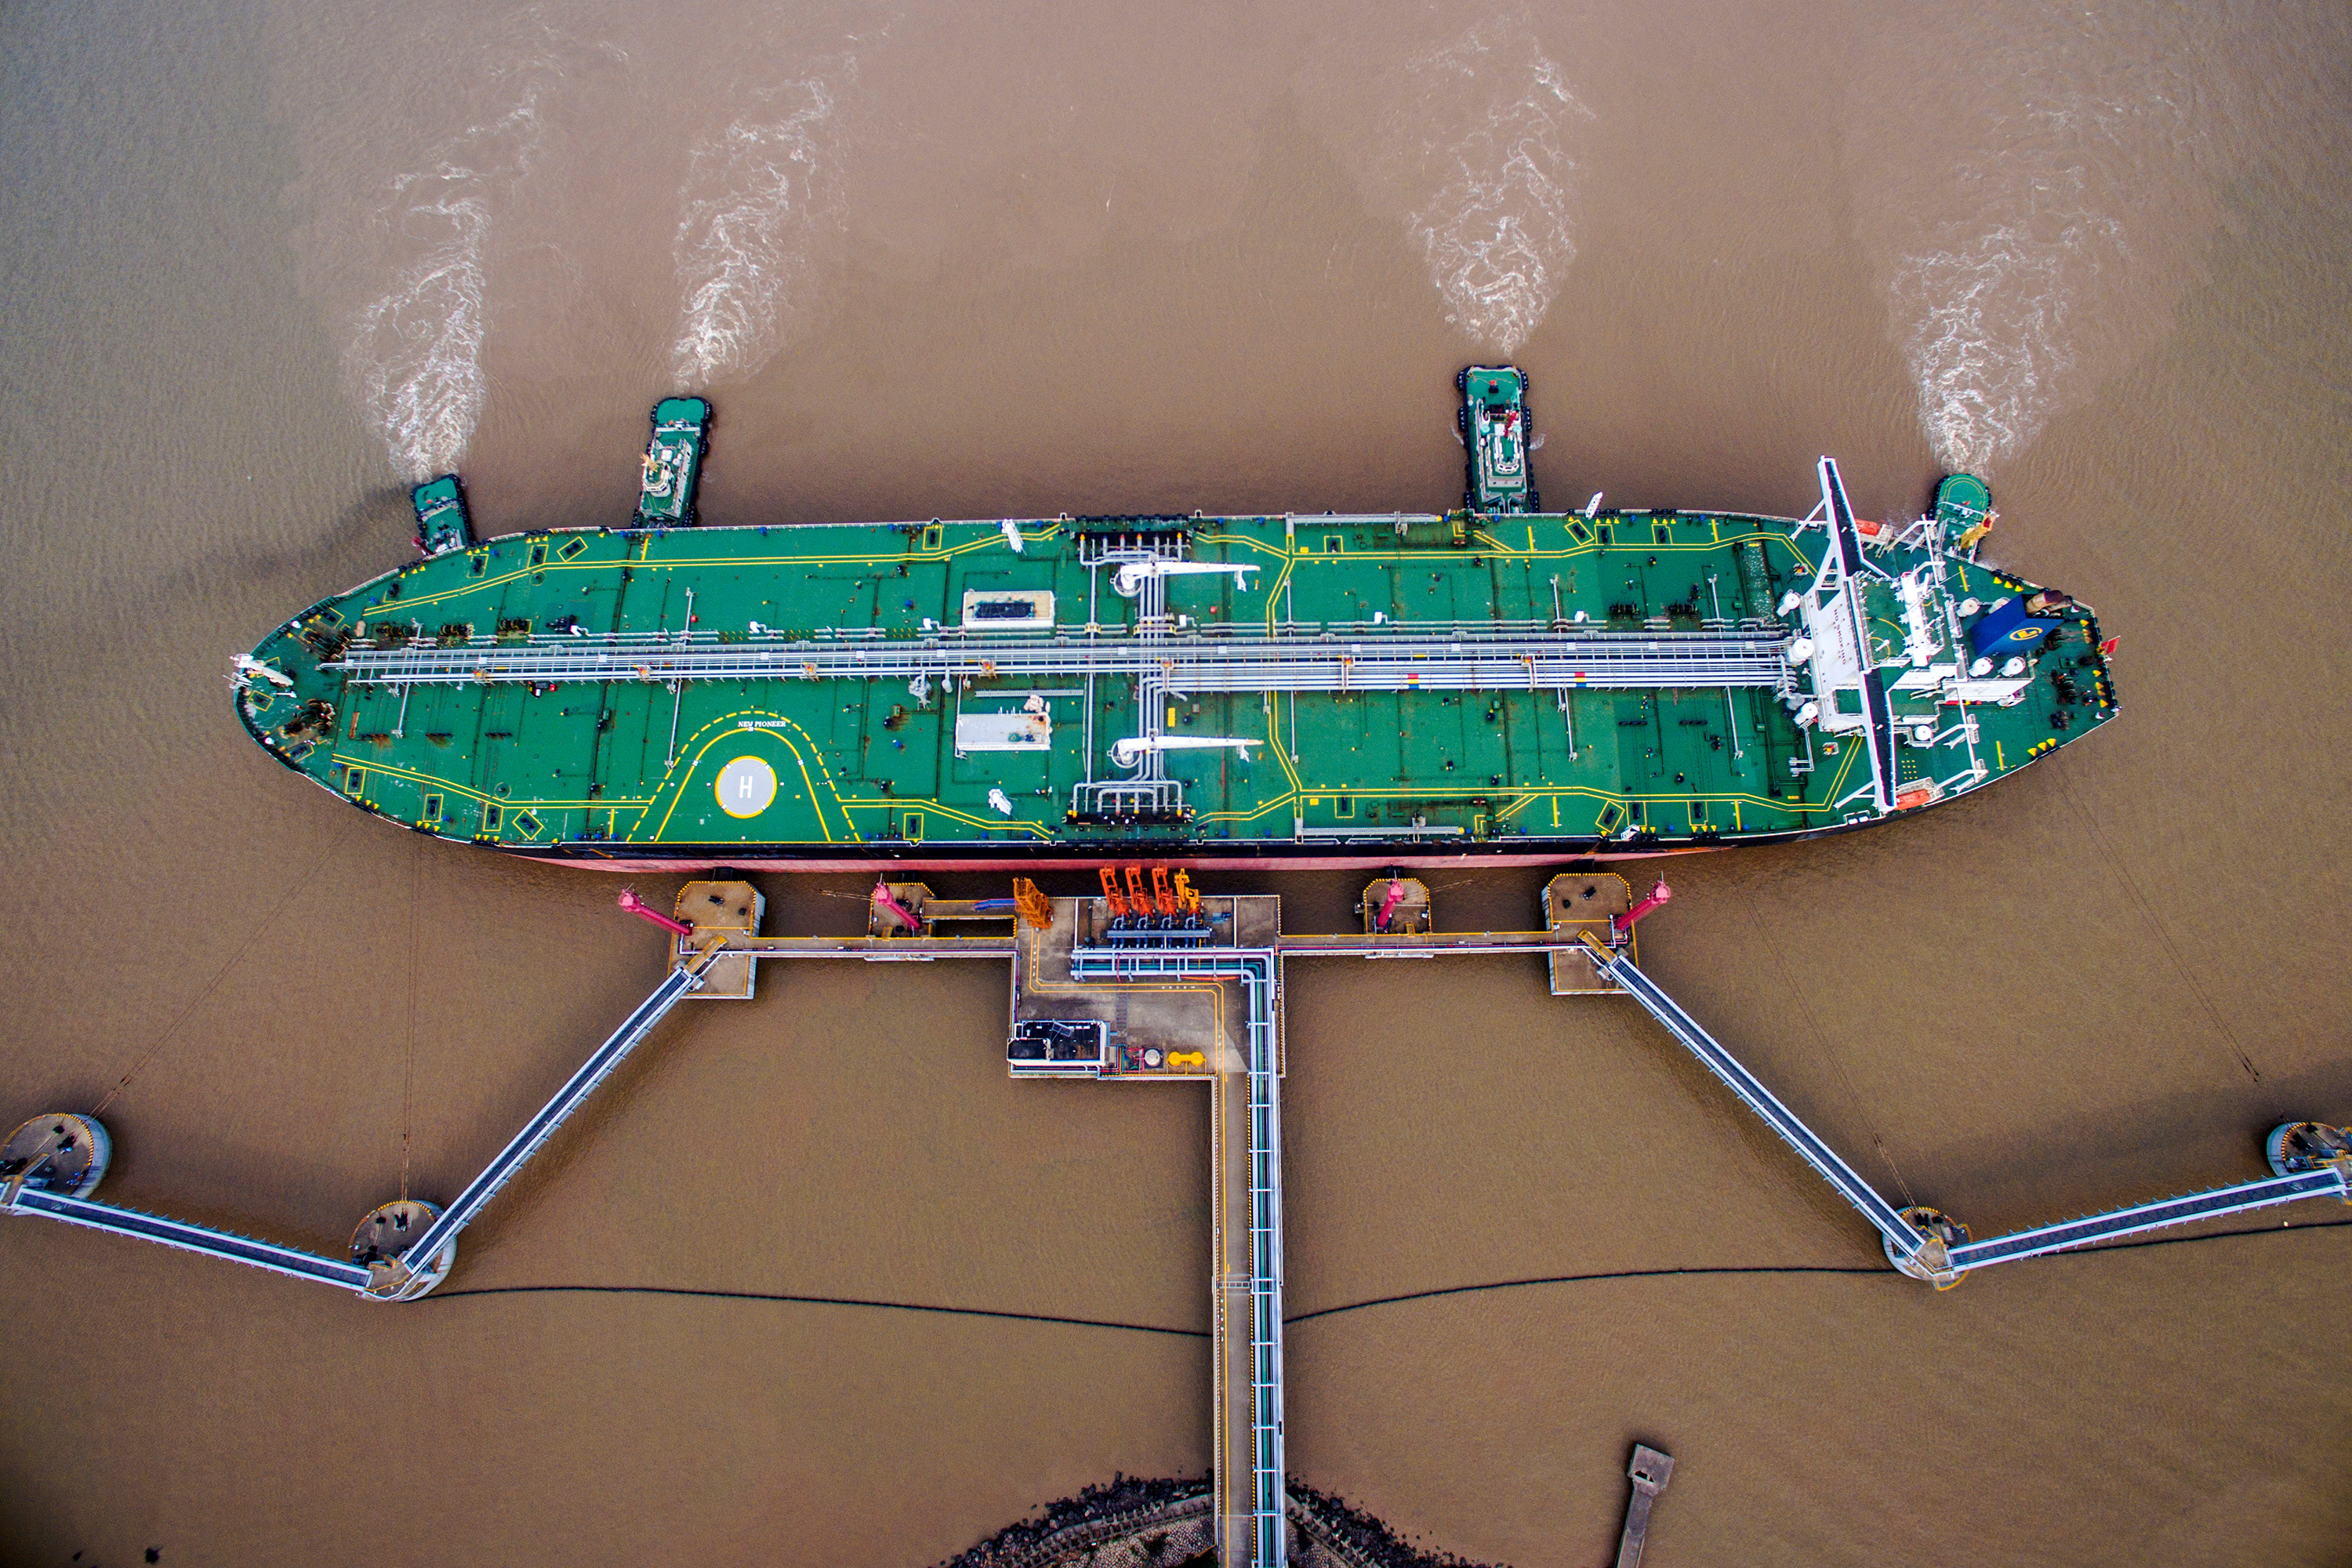 An oil tanker unloads crude oil at a crude oil terminal in Zhoushan, Zhejiang province, China July 4, 2018.   REUTERS/Stringer